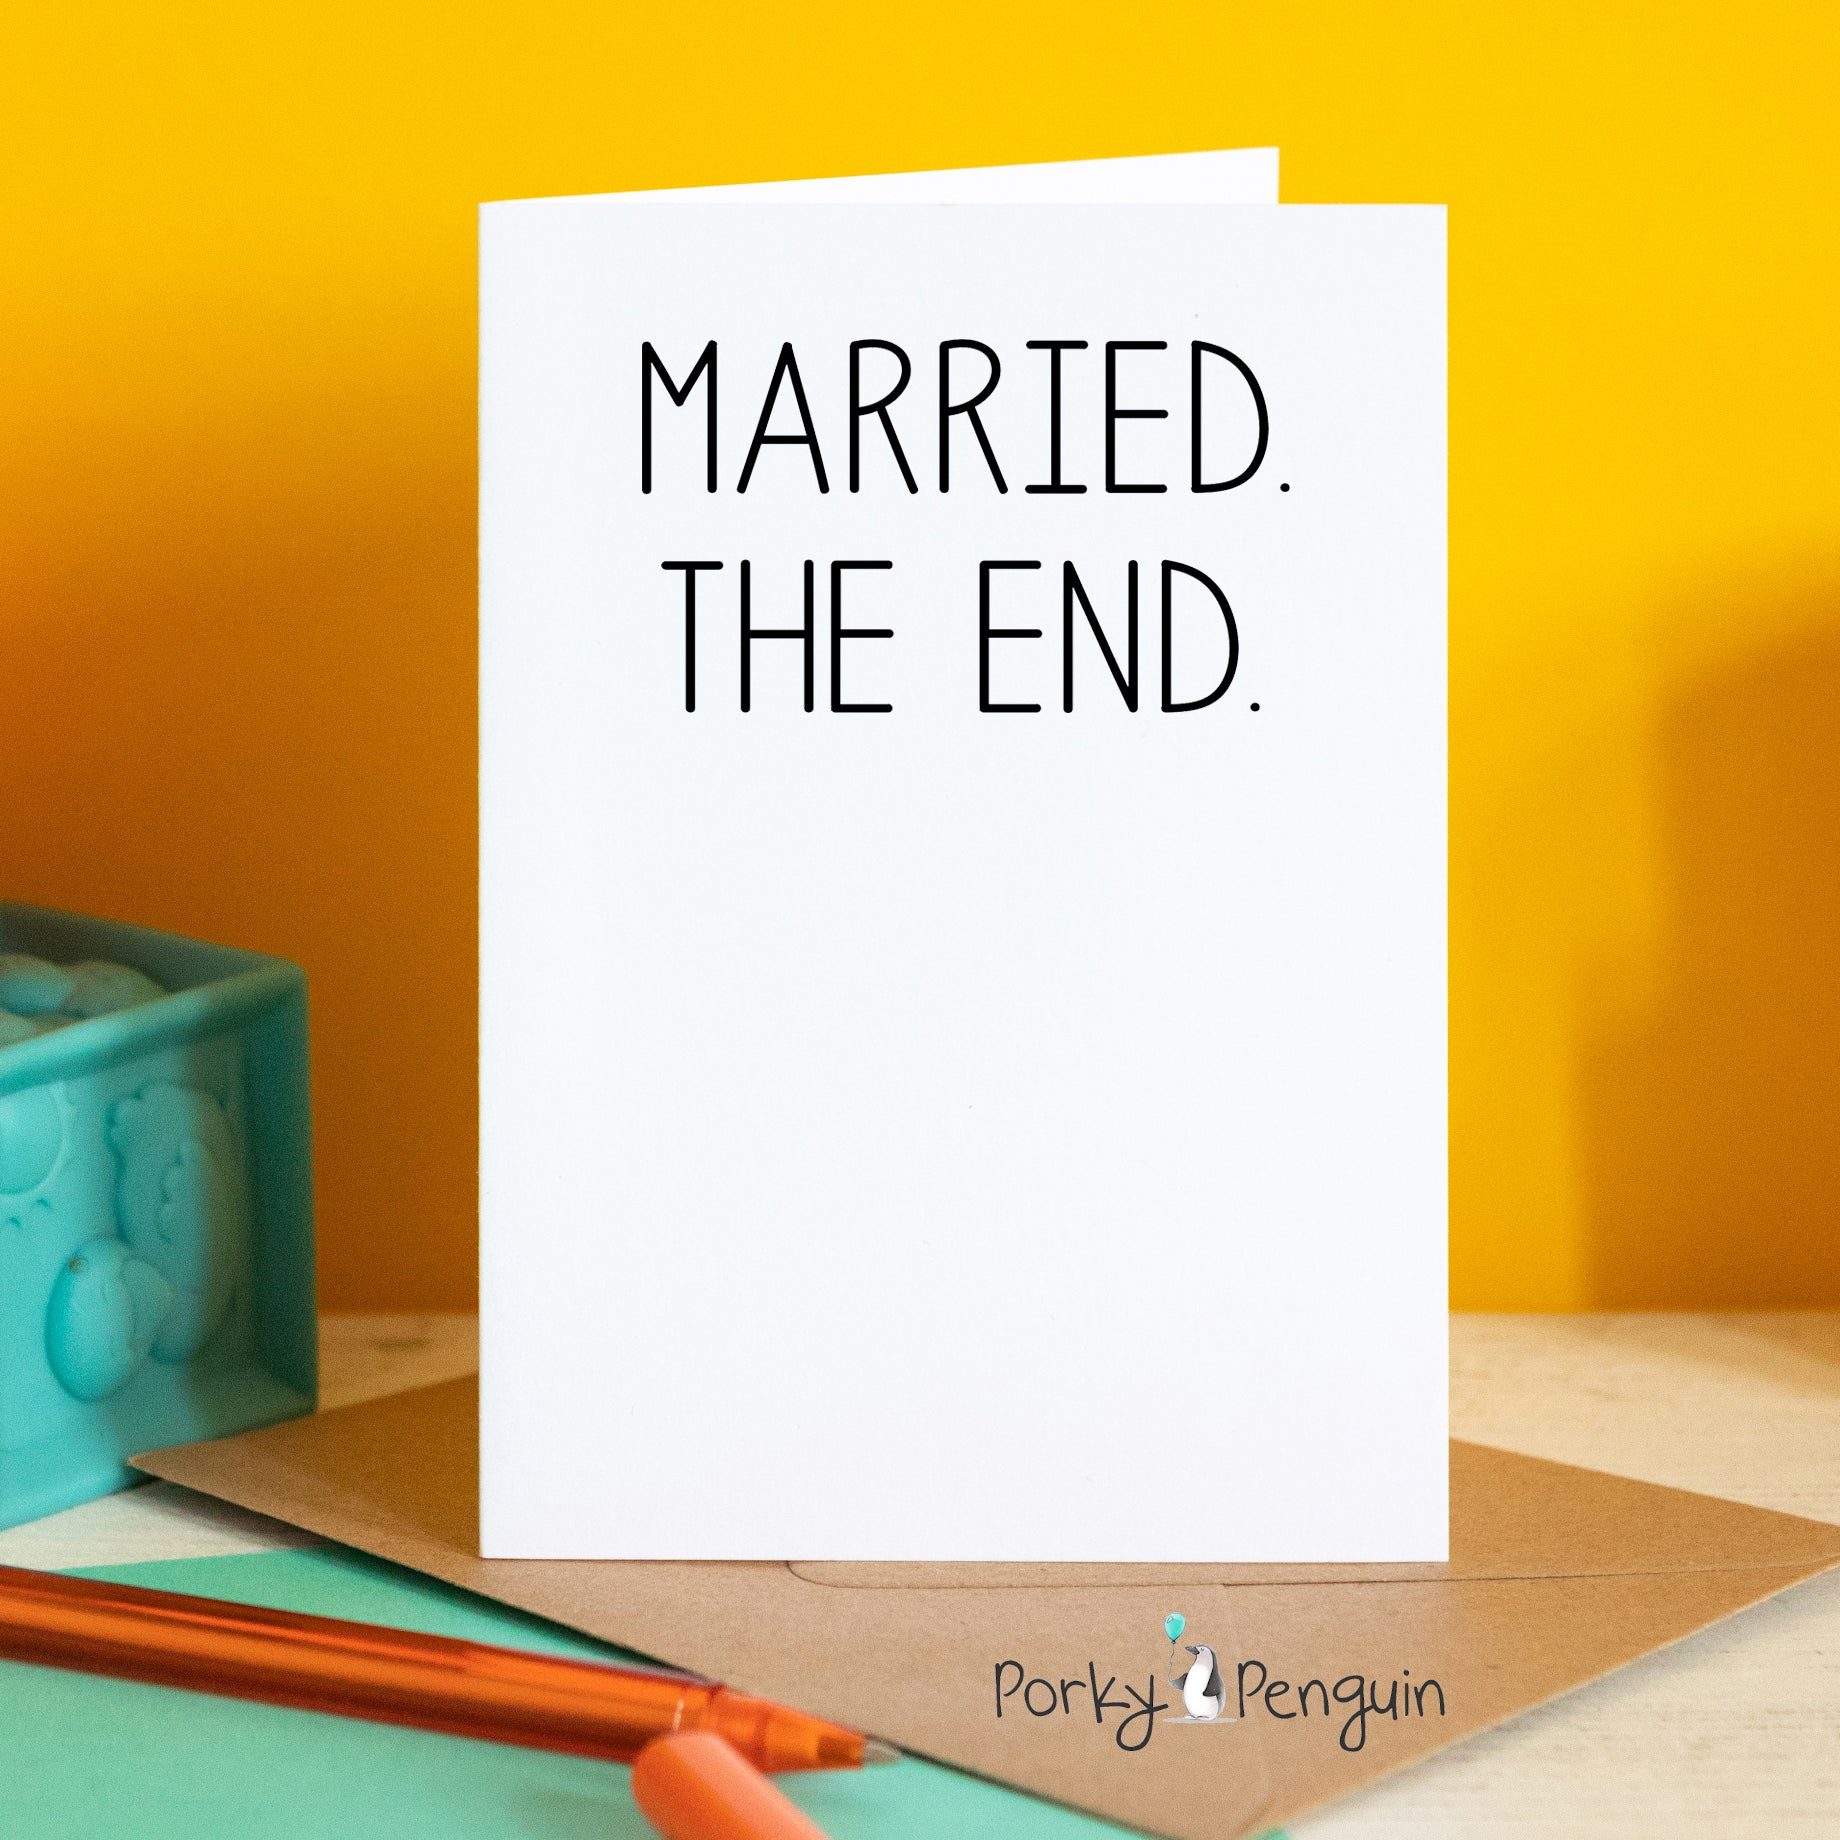 Married. The End.